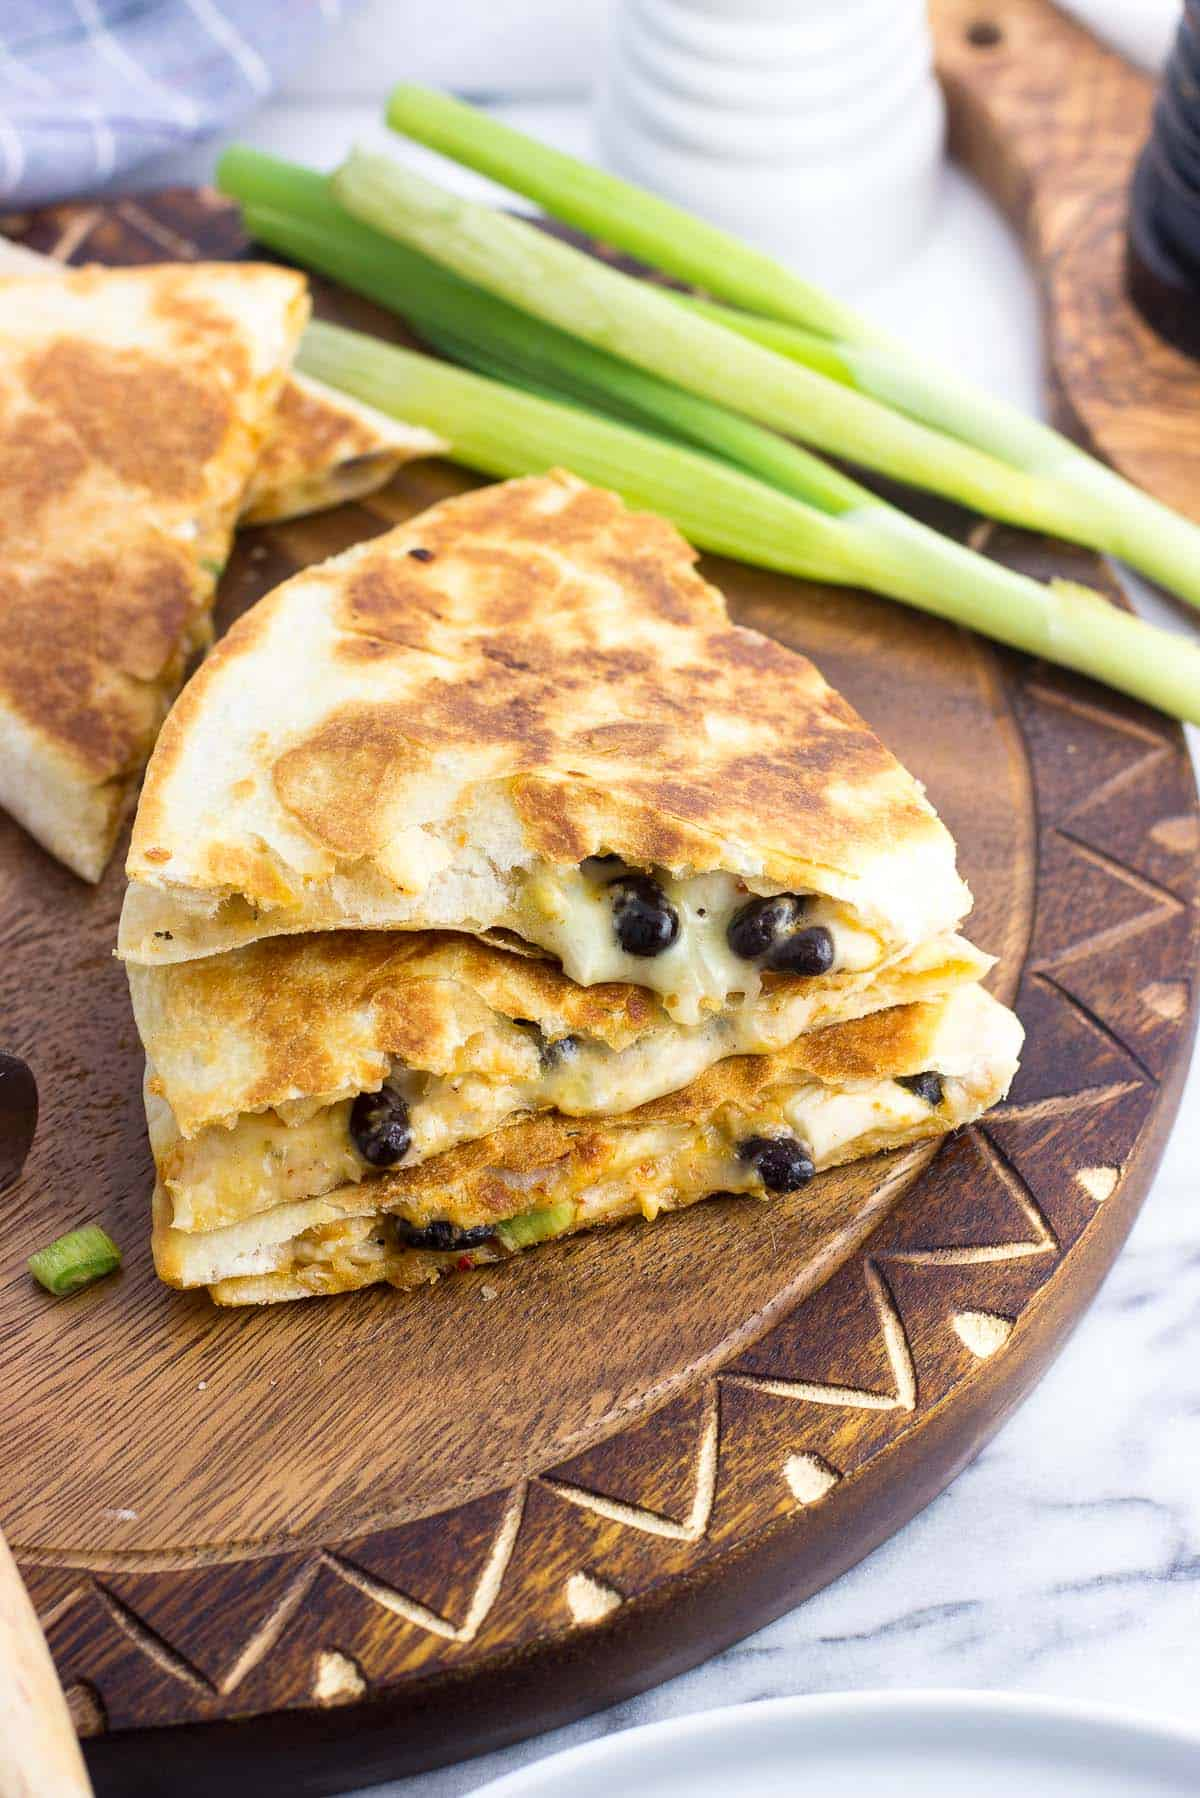 A stack of three quesadilla wedges on a wooden board with a bunch of green onions in the background